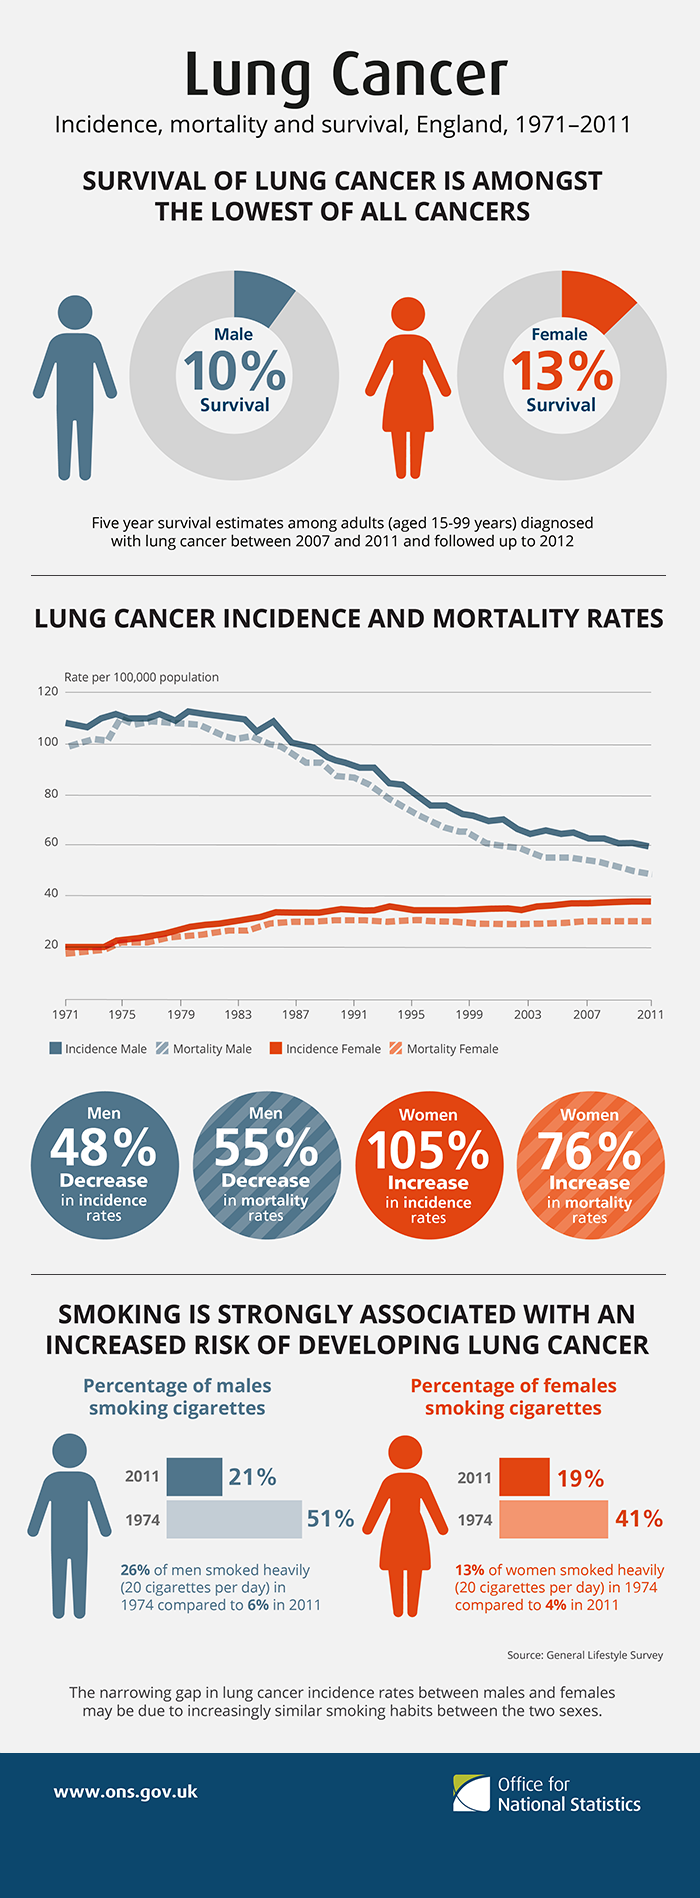 "Image: ""Lung cancer is the second most common cancer for both men and women in England, accounting for 14% of all newly diagnosed male cancers and 12% of all newly diagnosed female cancers in 2011"" by Office for National Statistics. License: Open Government Licence v1.0"